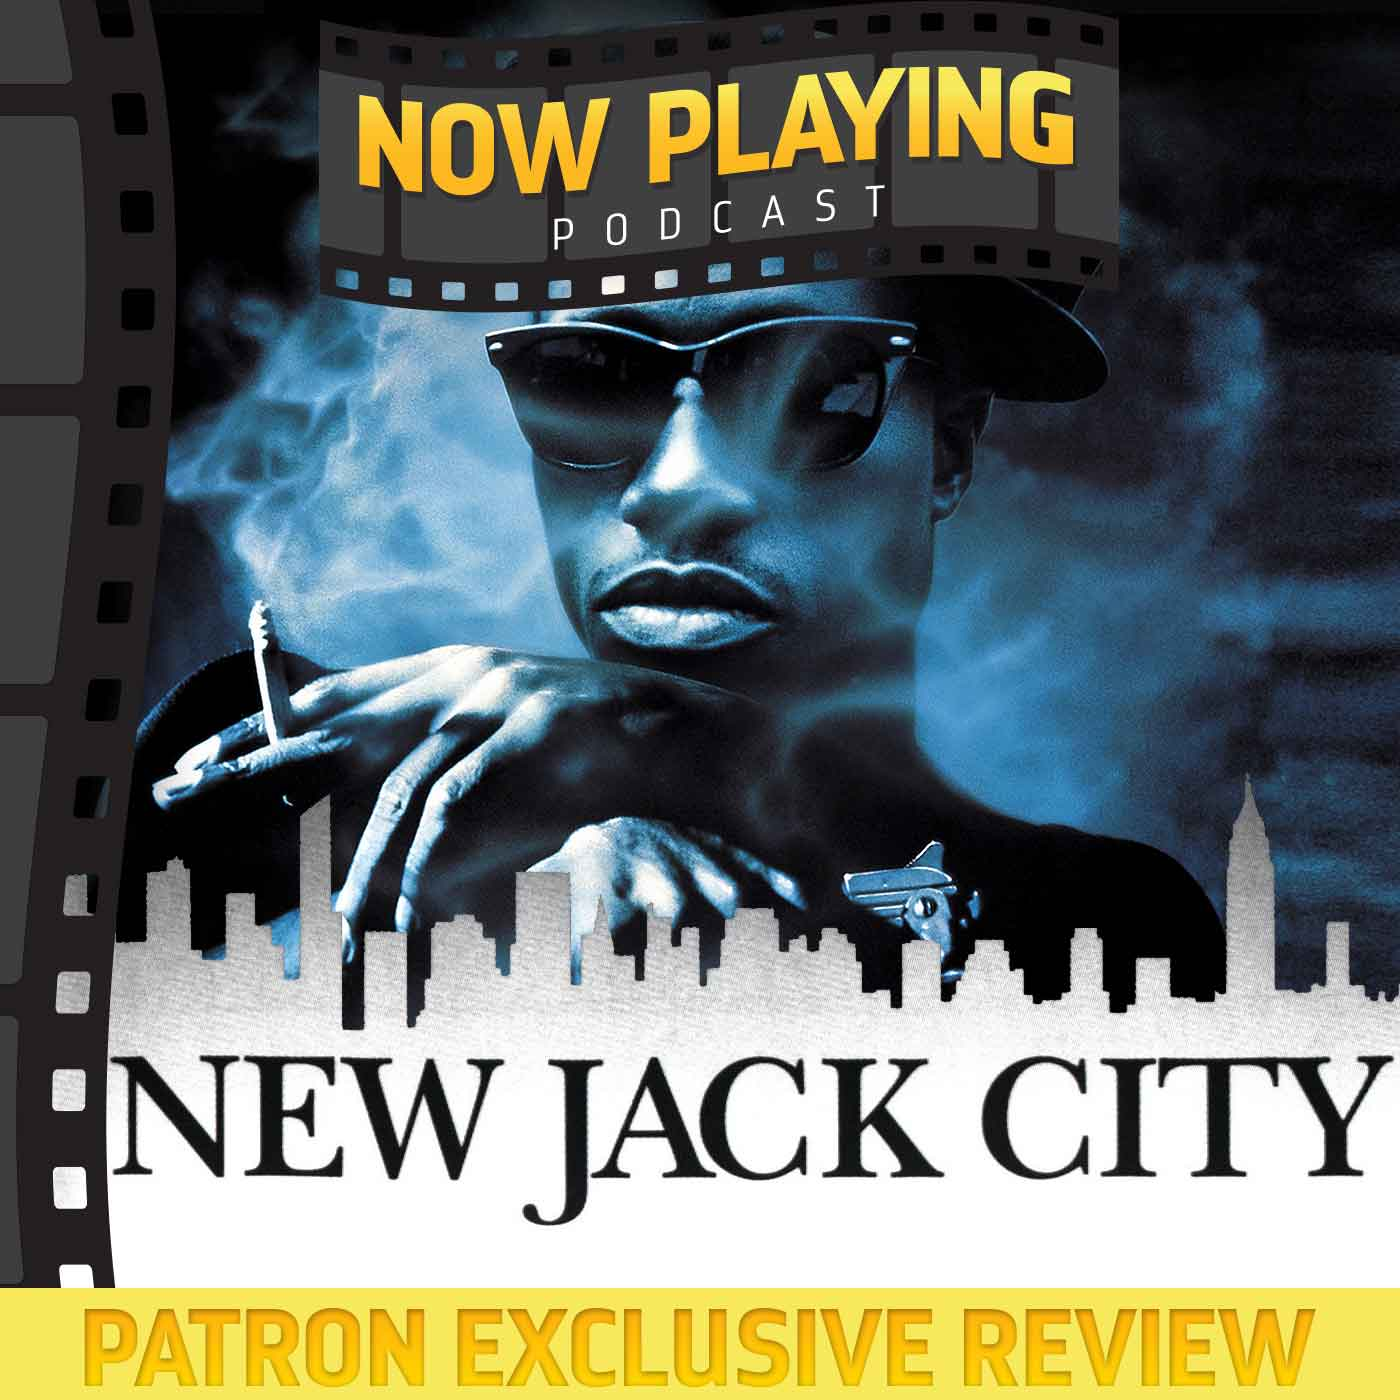 New Jack City - Patron Exclusive Review